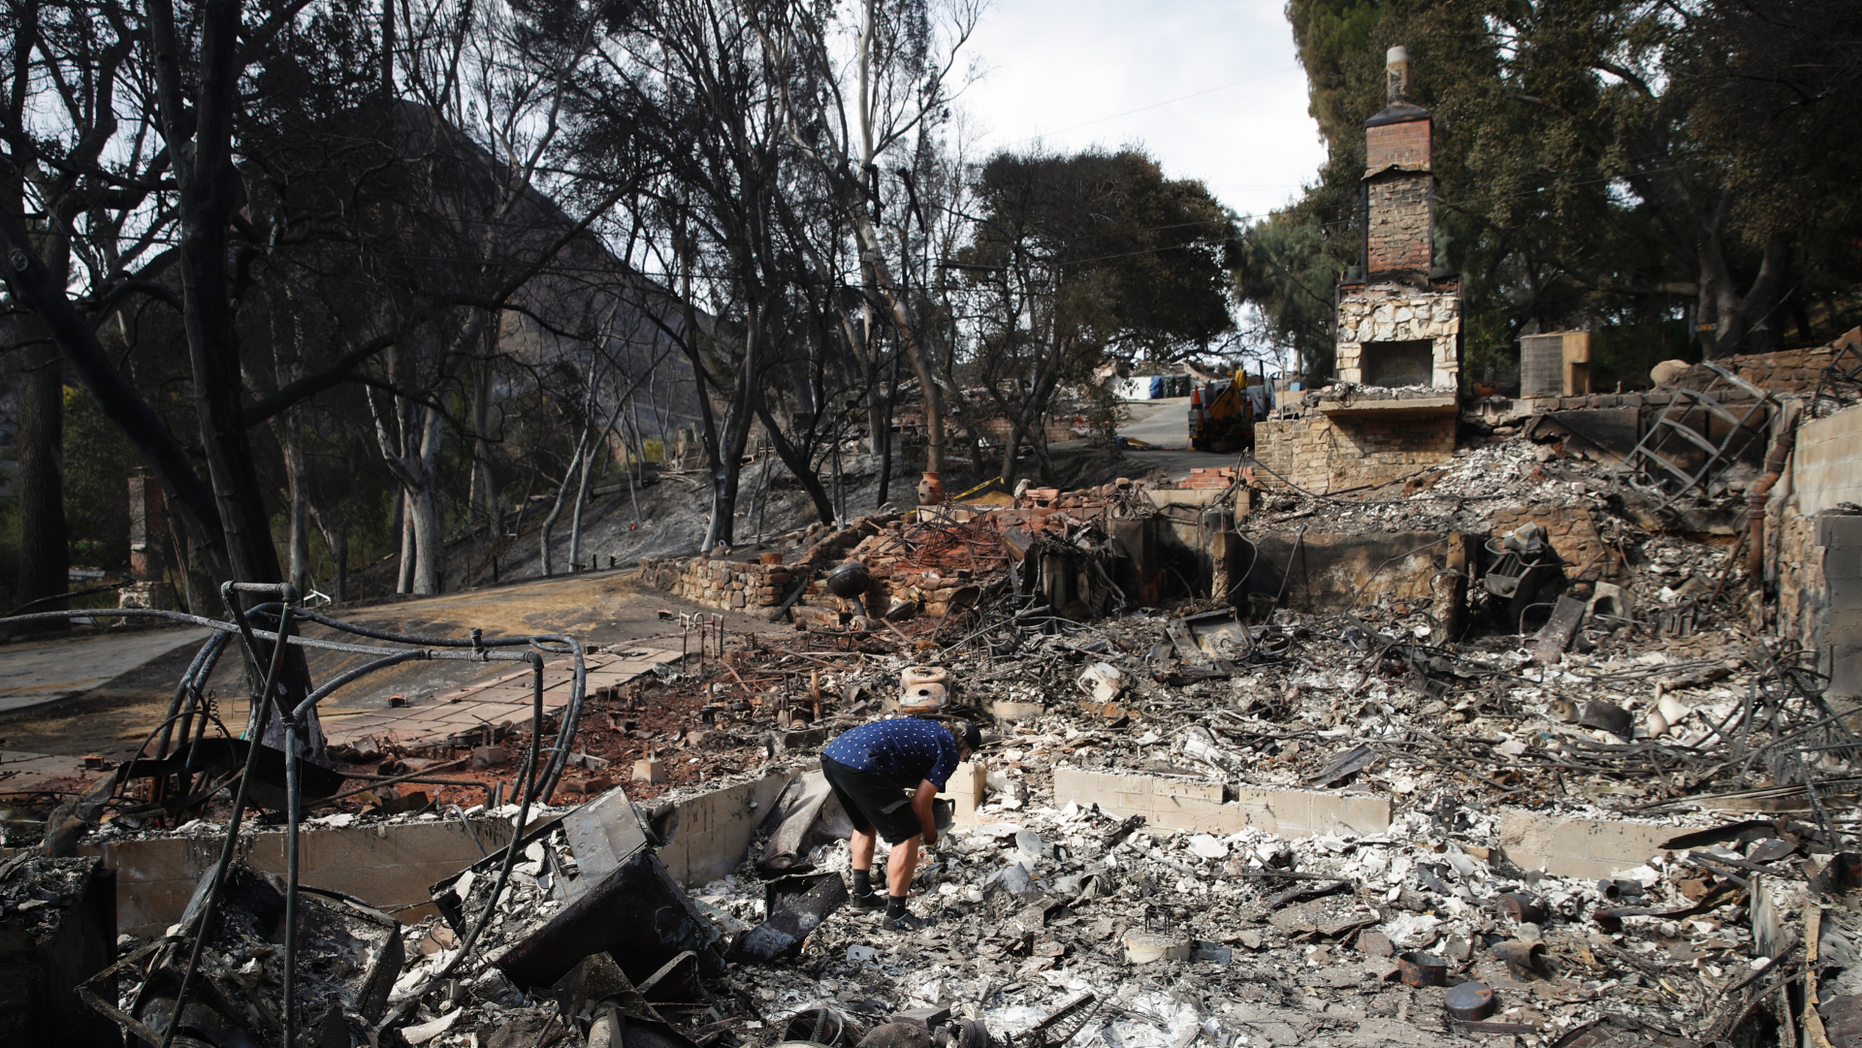 Roger Kelton searches through the remains of his mother-in-law's home leveled by the Woolsey Fire, Tuesday, Nov. 13, 2018, in the southern California city of Agoura Hills. (AP Photo/Jae C. Hong)